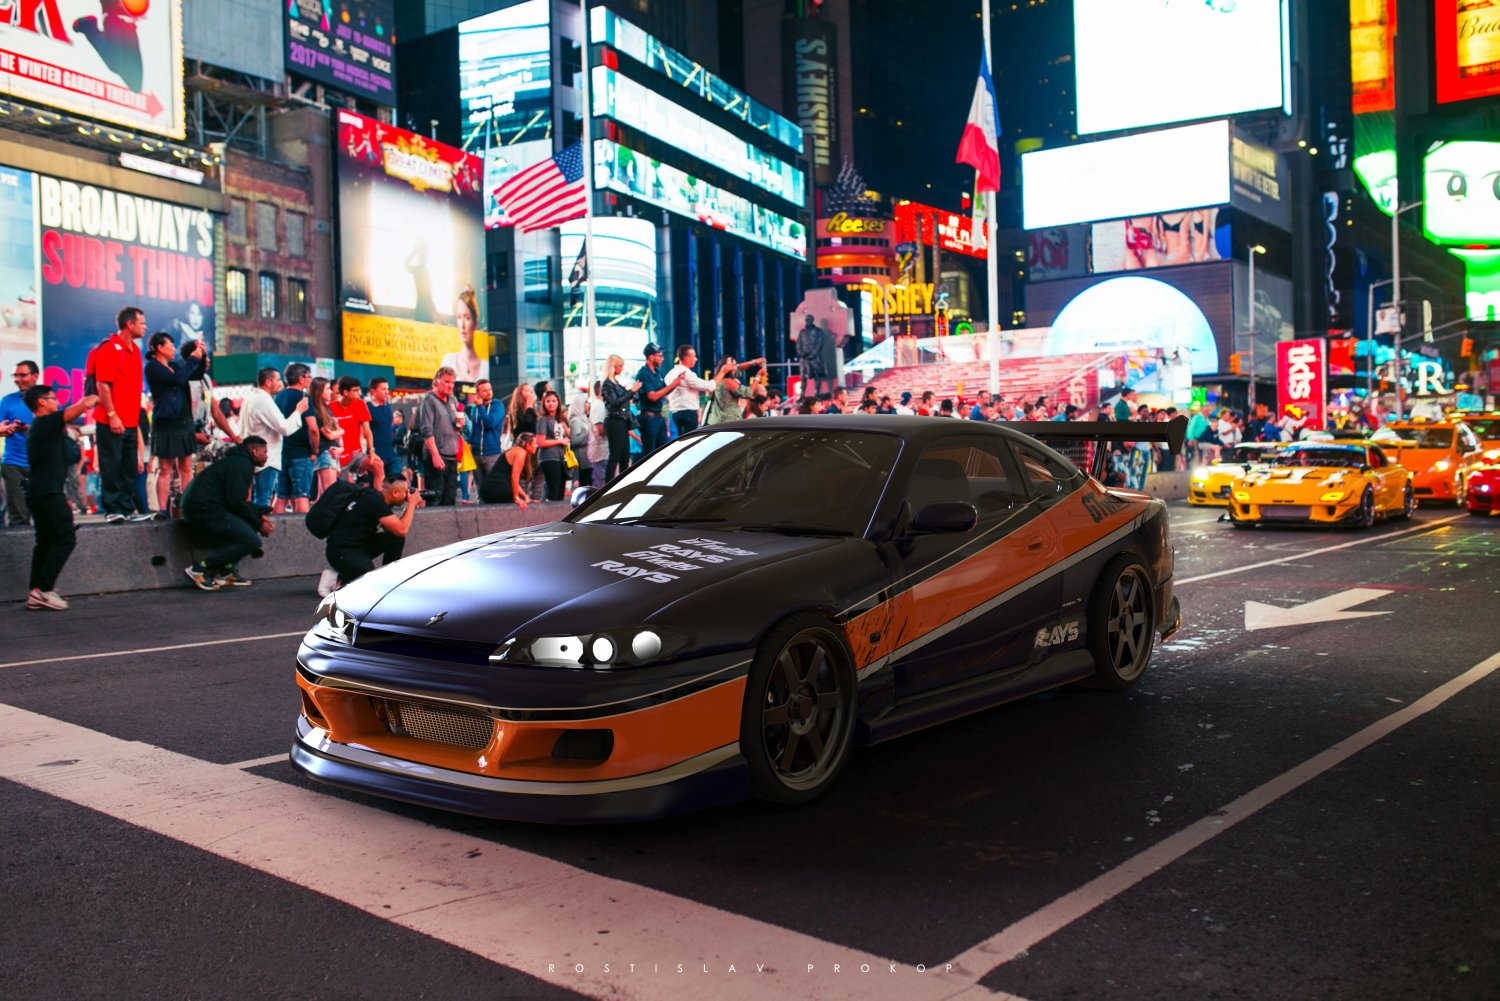 Nissan S15 Silvia - Mona Lisa - Fast and Furious Tokyo Drift 3D Model